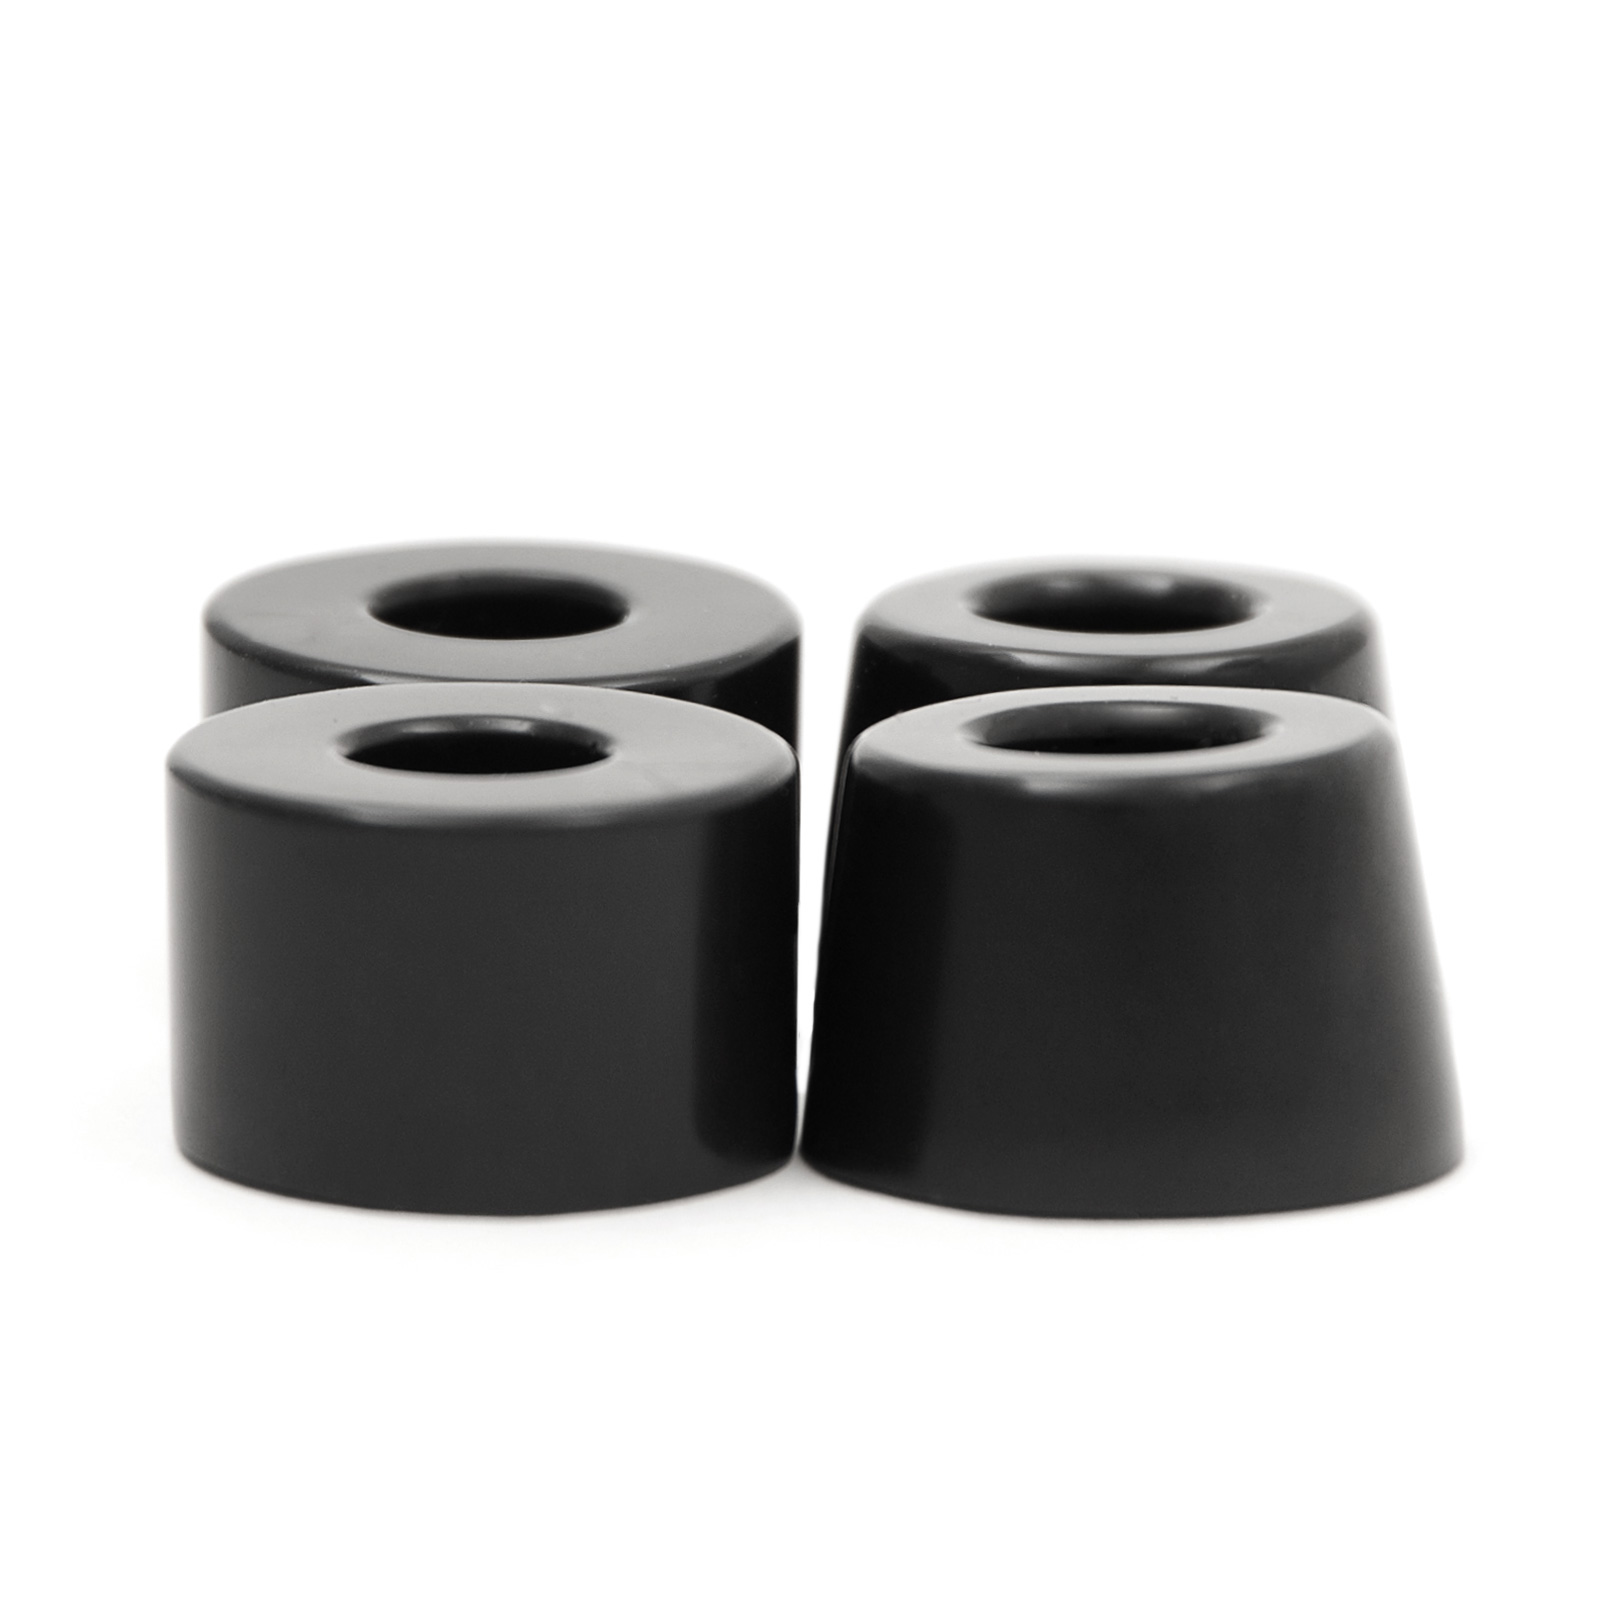 Apollo Longboard Bushings - Schwarz / 95A - Longboard Cushions im Set